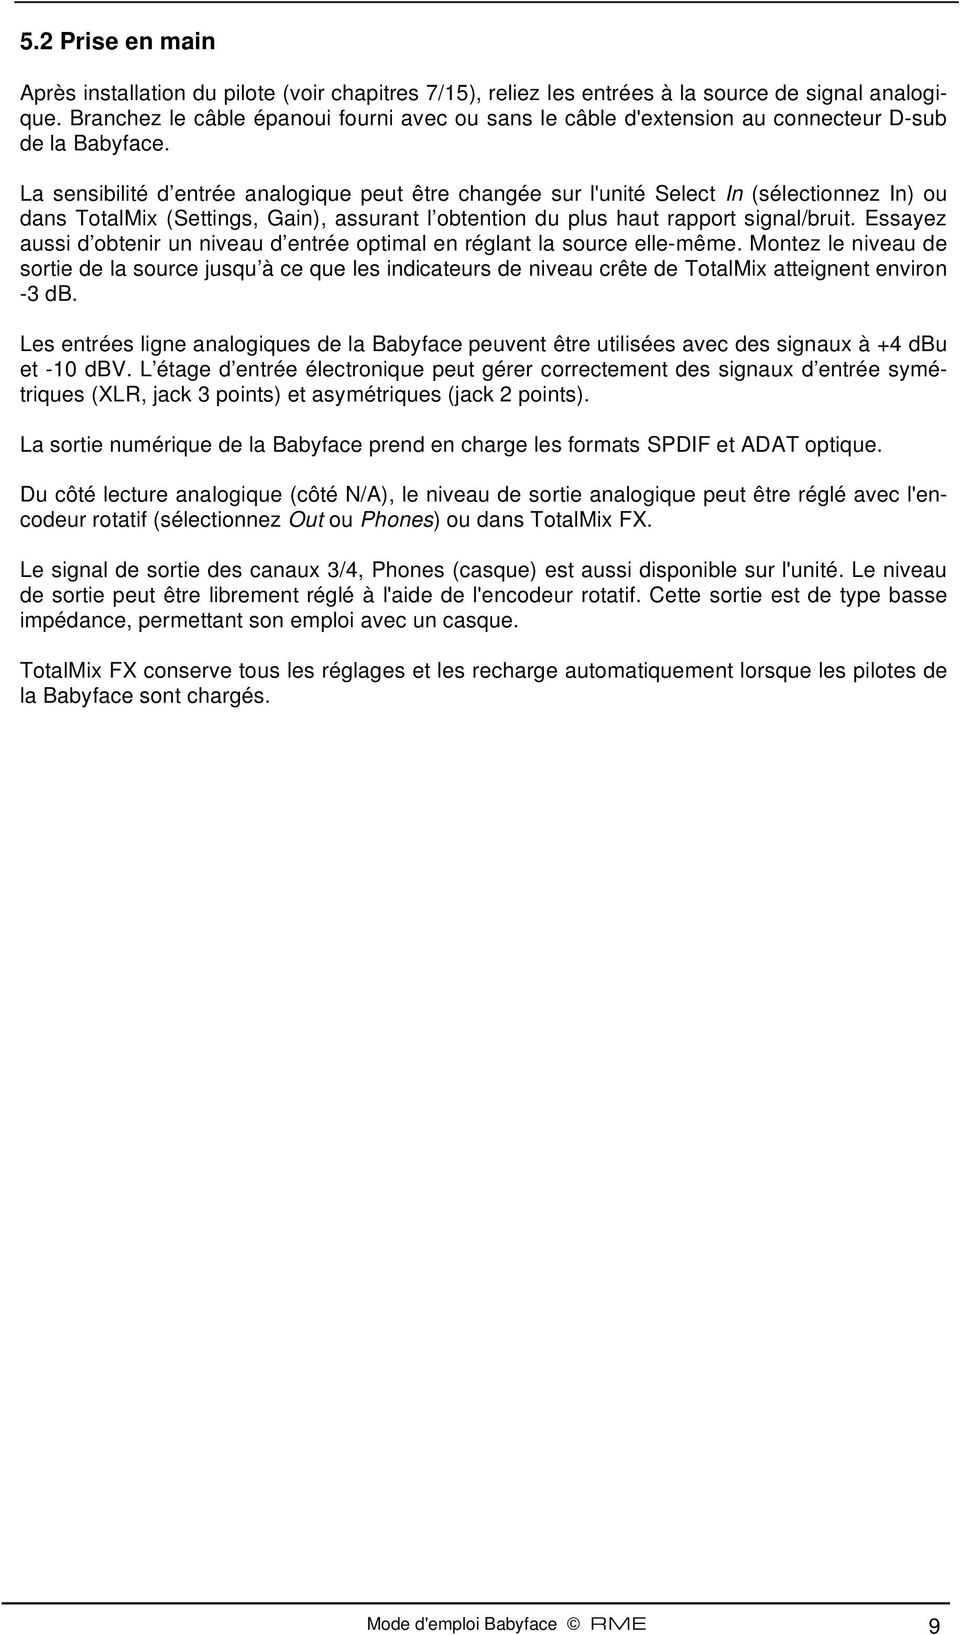 La sensibilité d entrée analogique peut être changée sur l'unité Select In (sélectionnez In) ou dans TotalMix (Settings, Gain), assurant l obtention du plus haut rapport signal/bruit.